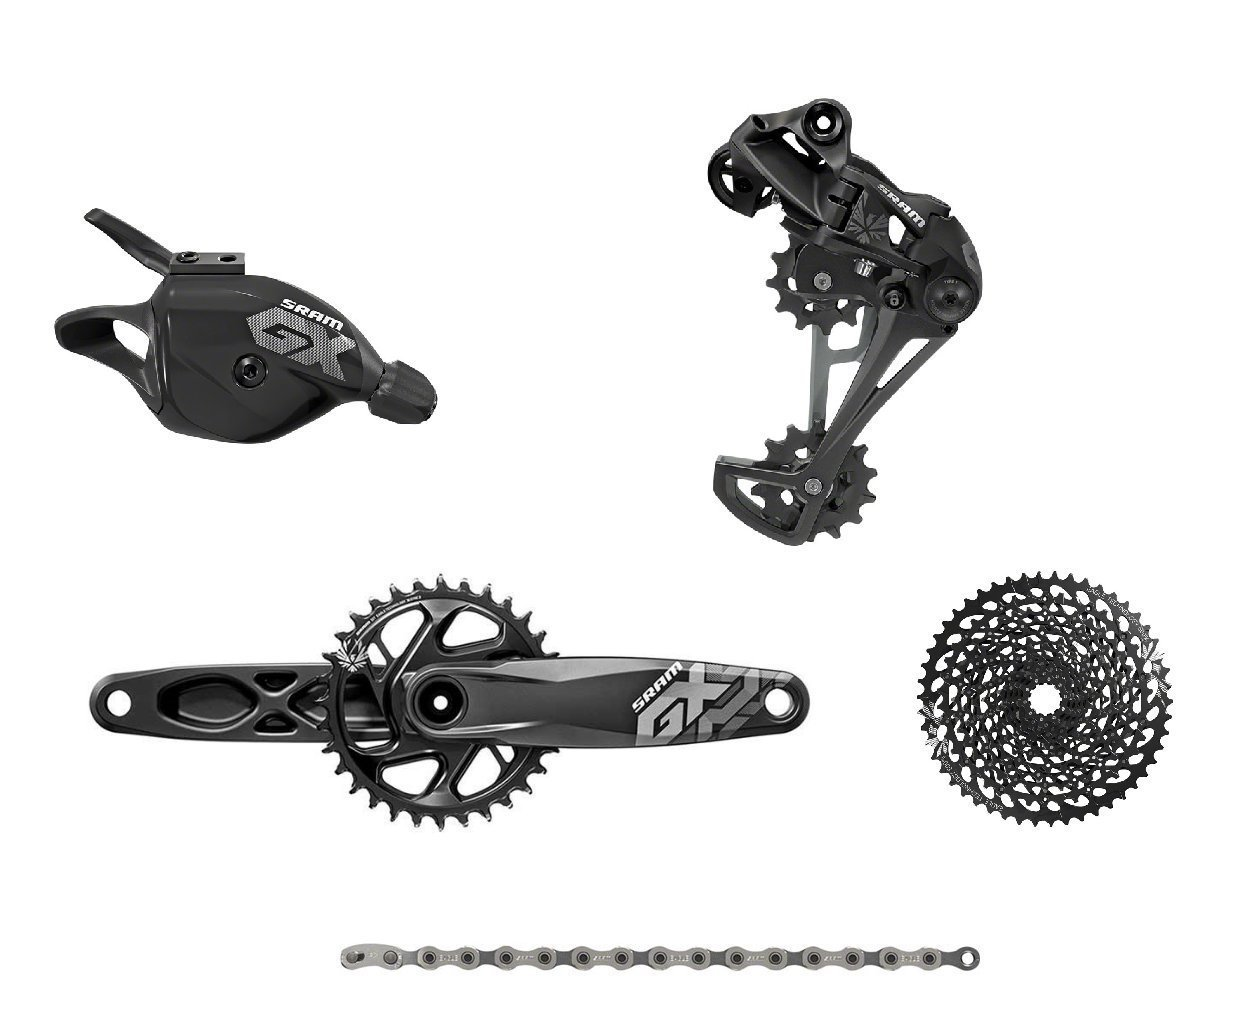 SRAM Eagle GX GXP 175mm Complete Groupset